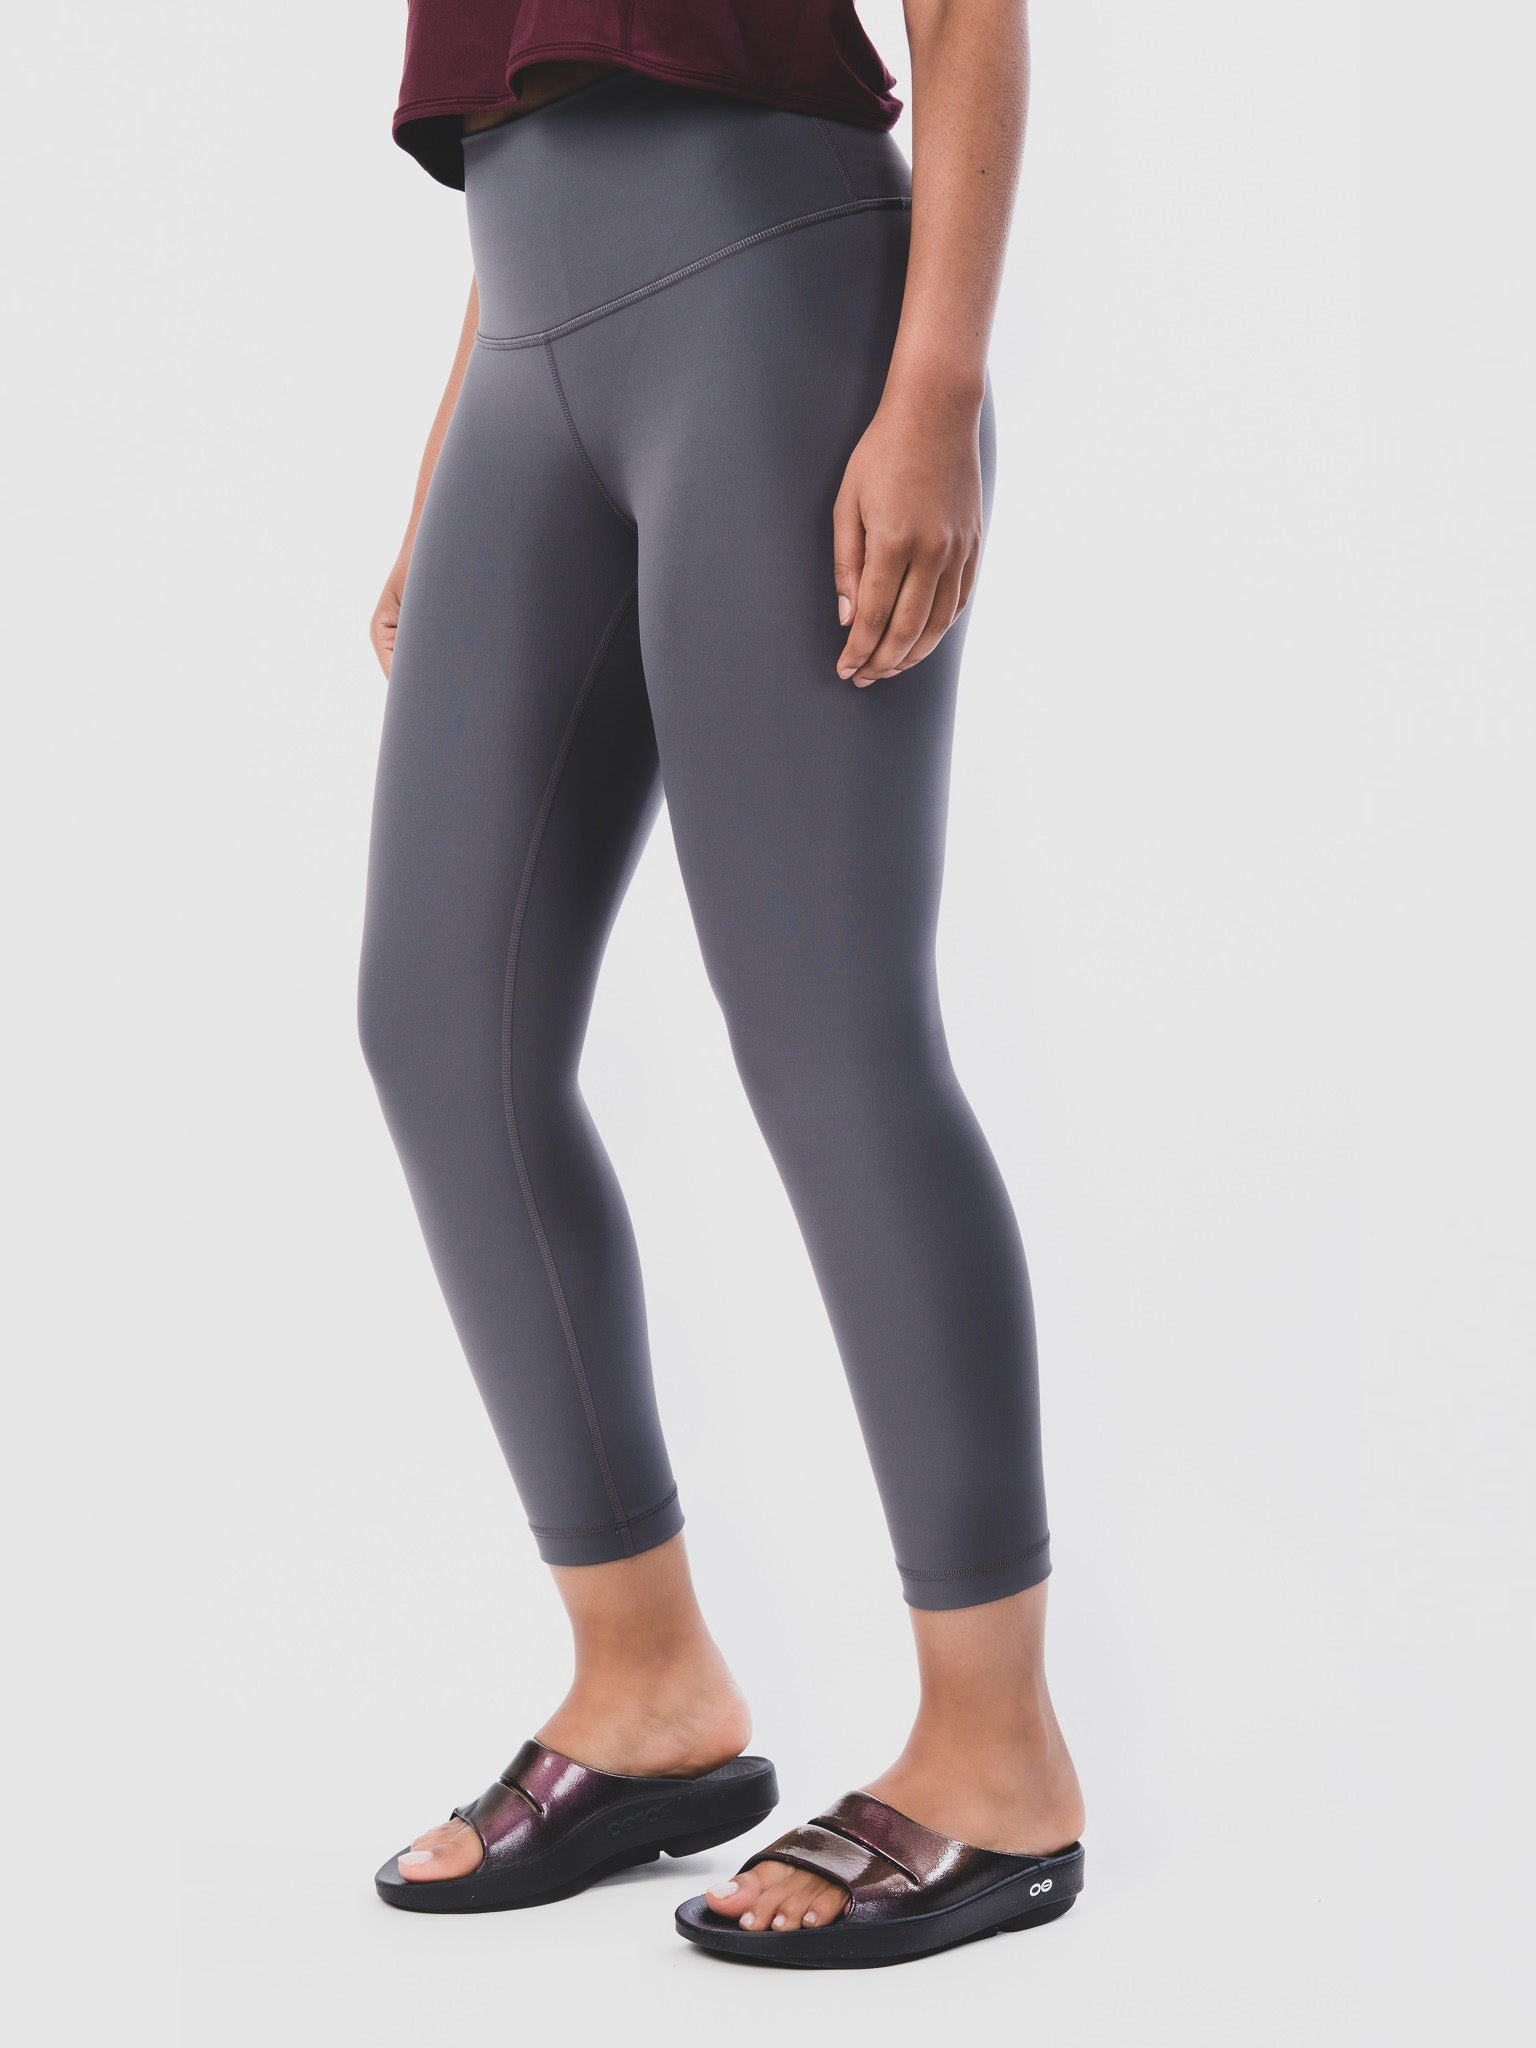 Women's OOahh Luxe Cabernet Knee Down